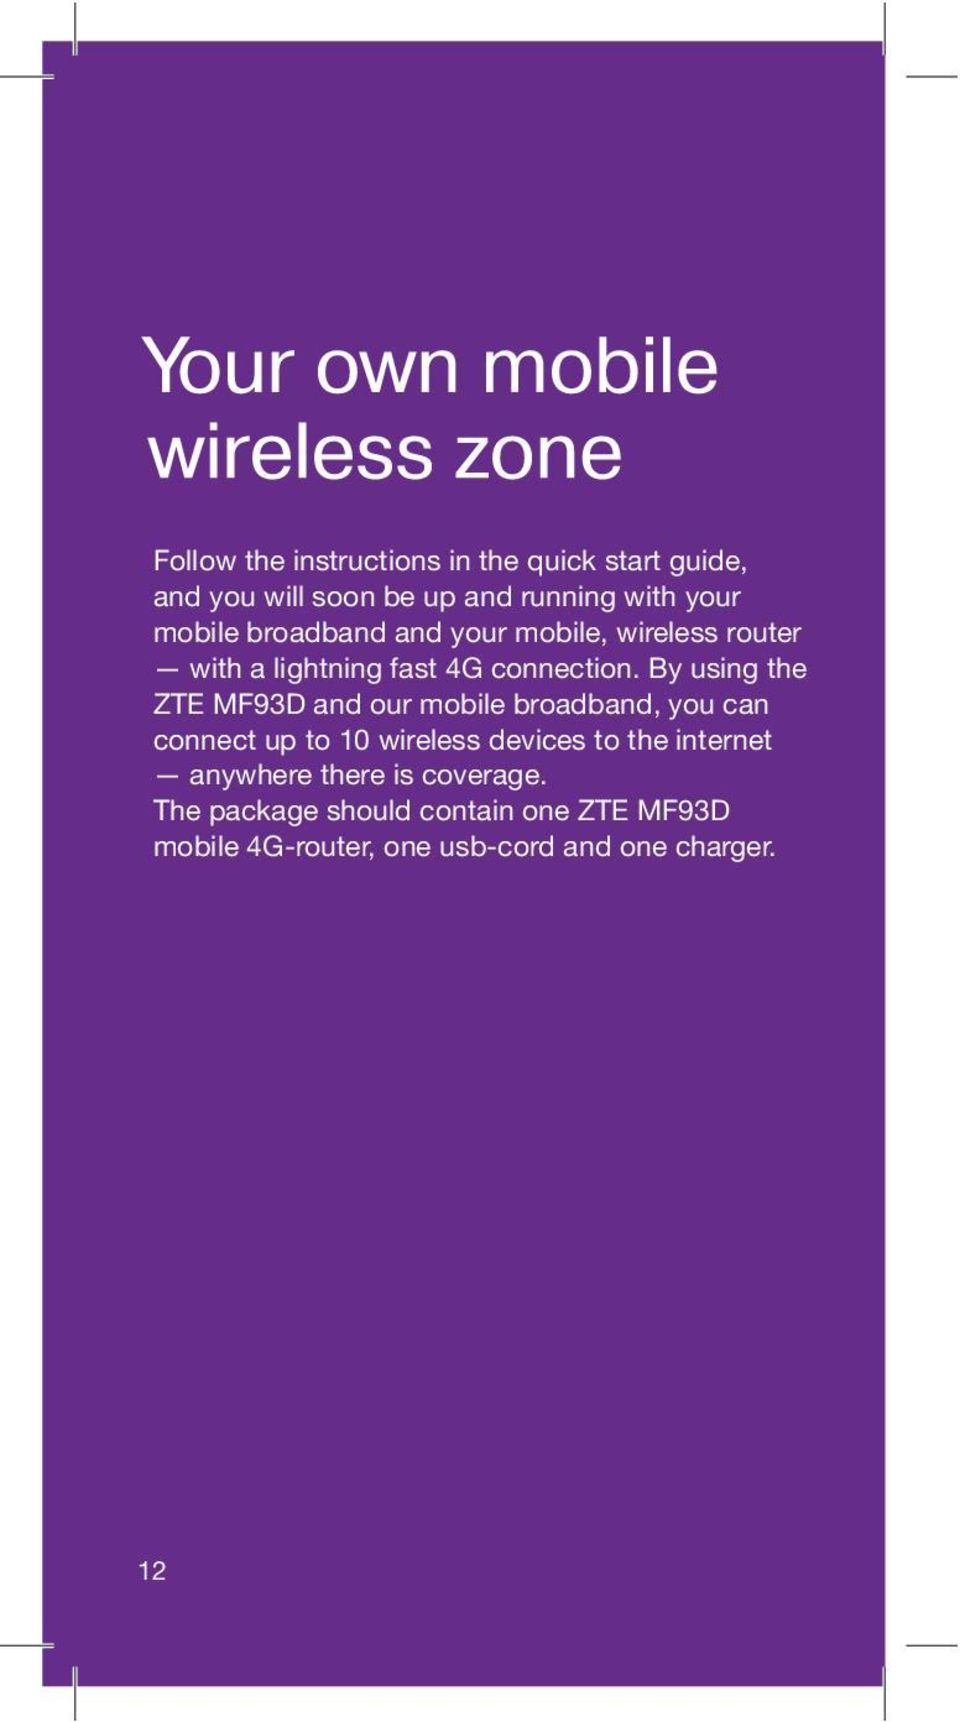 By using the ZTE MF93D and our mobile broadband, you can connect up to 10 wireless devices to the